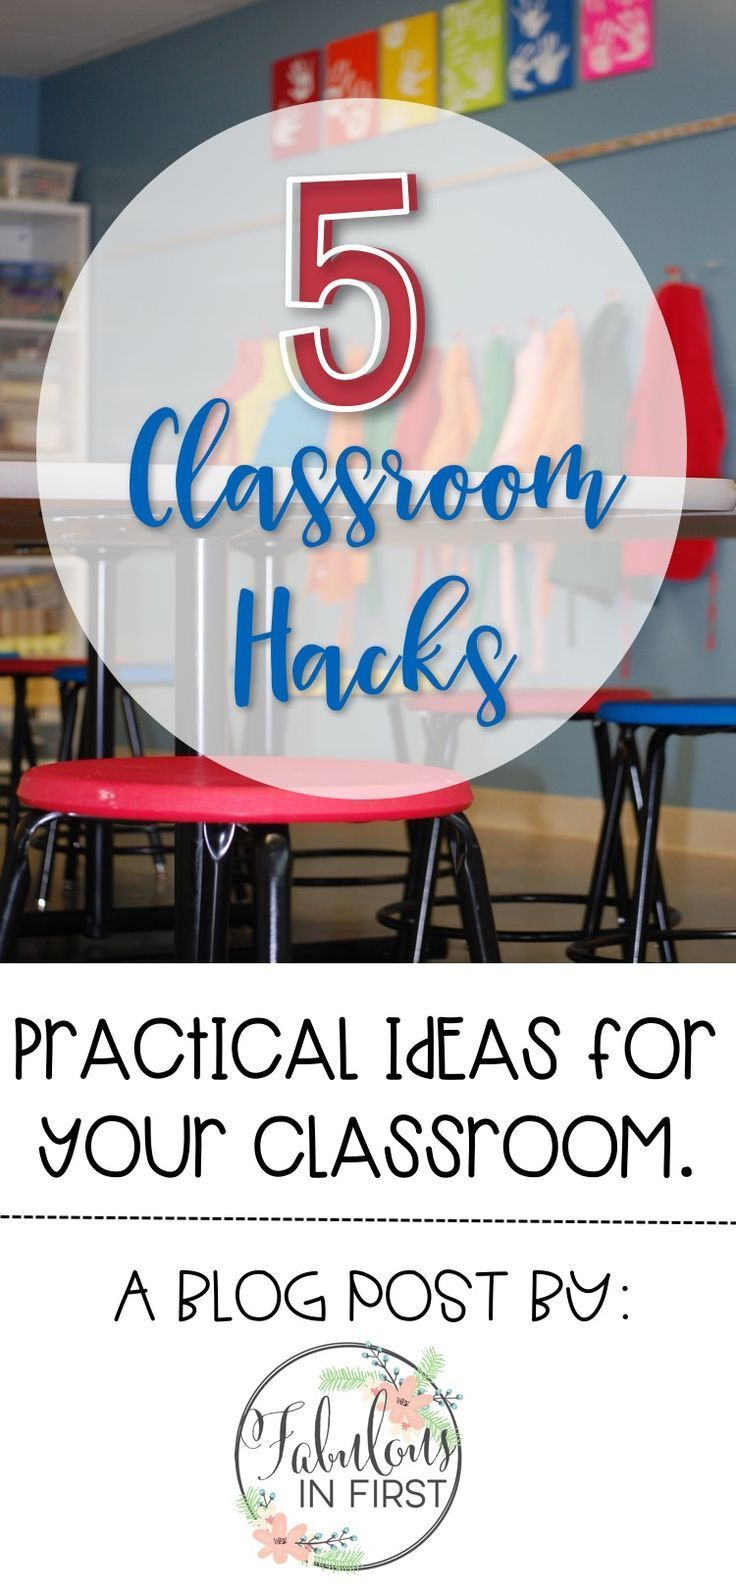 5 Classroom Hacks! Check out ways to save space in your classroom, get your students to be more independent, decorate your windows on a dime, prevent things from constantly falling off your walls, etc. Don't miss these practical classroom ideas.